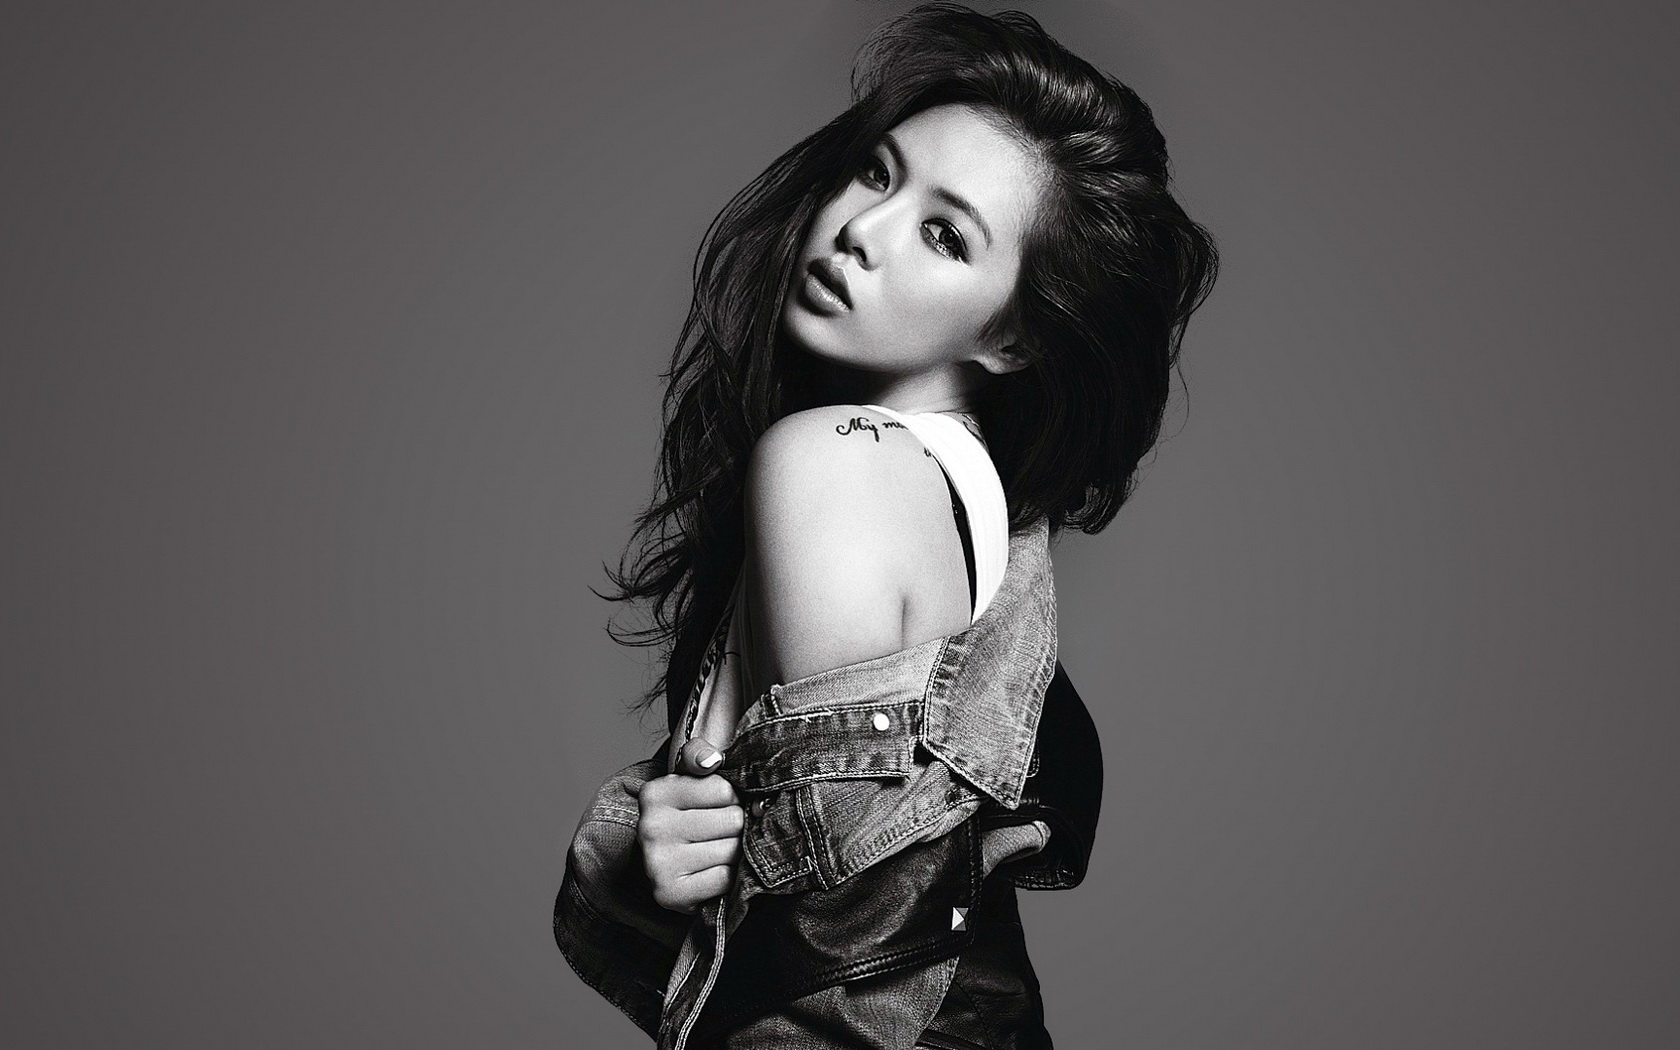 kim hyuna hd - photo #5